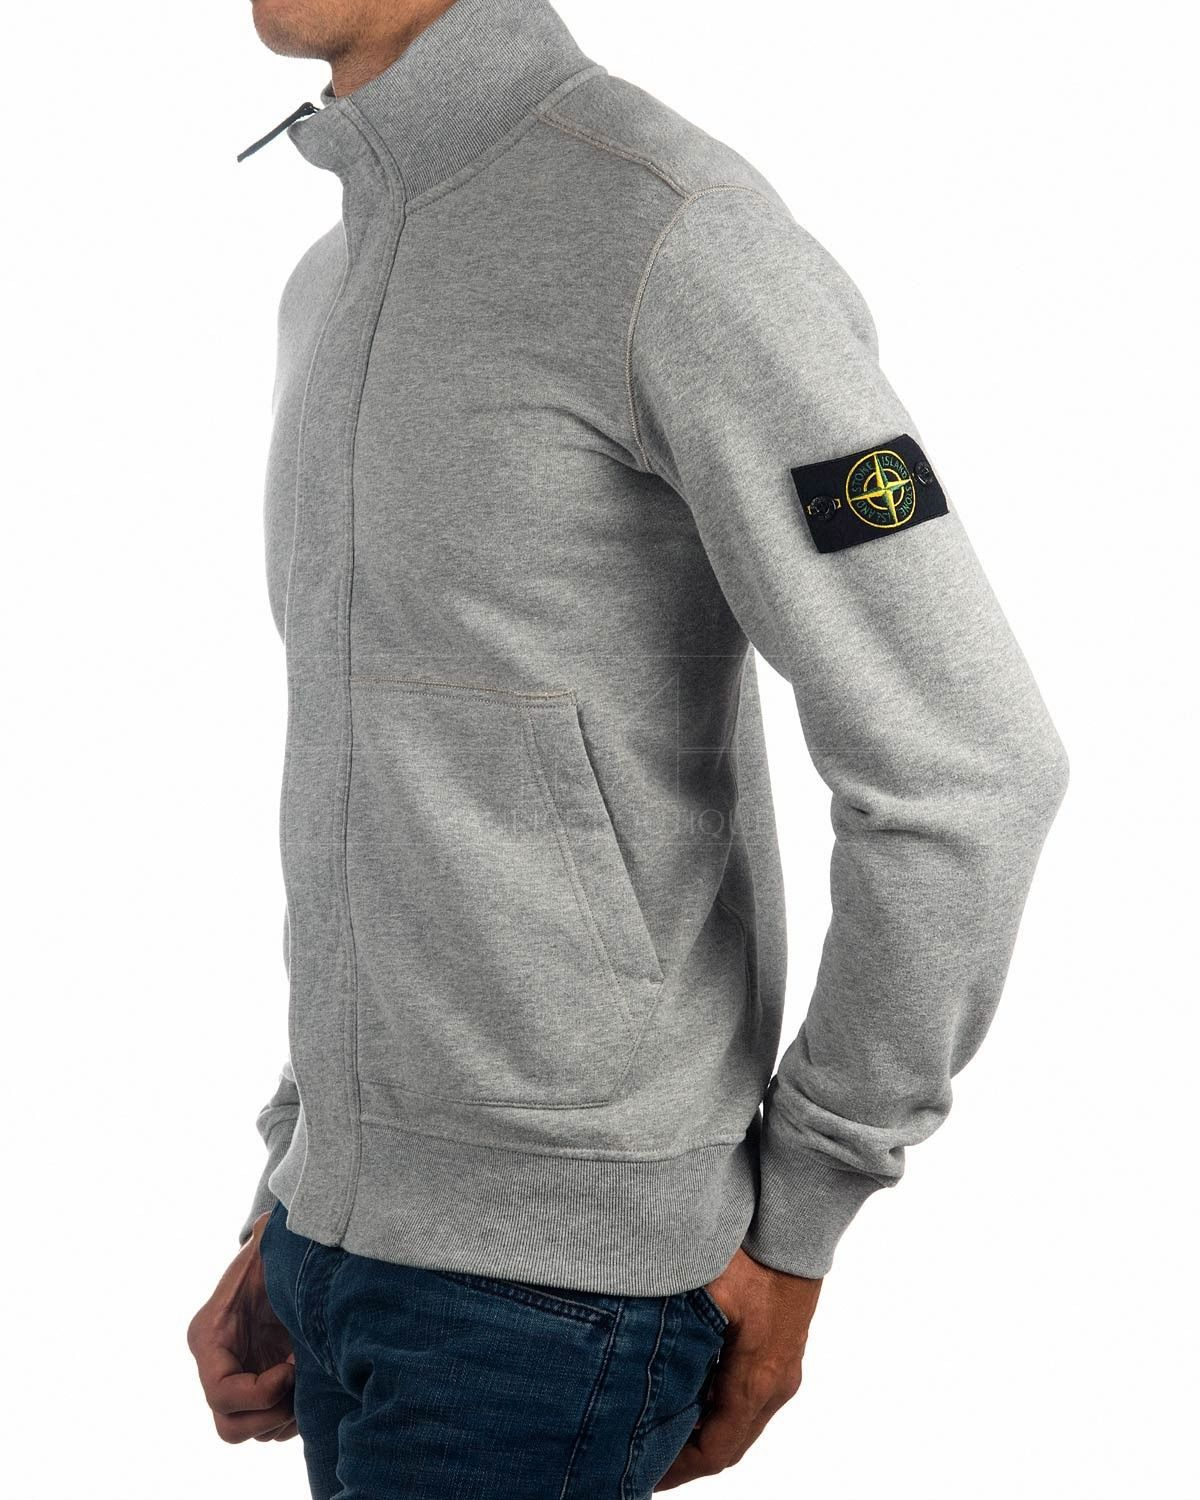 01445fd814 Stone Island Full Zip Sweatshirt - Blue Inchiostro 561620